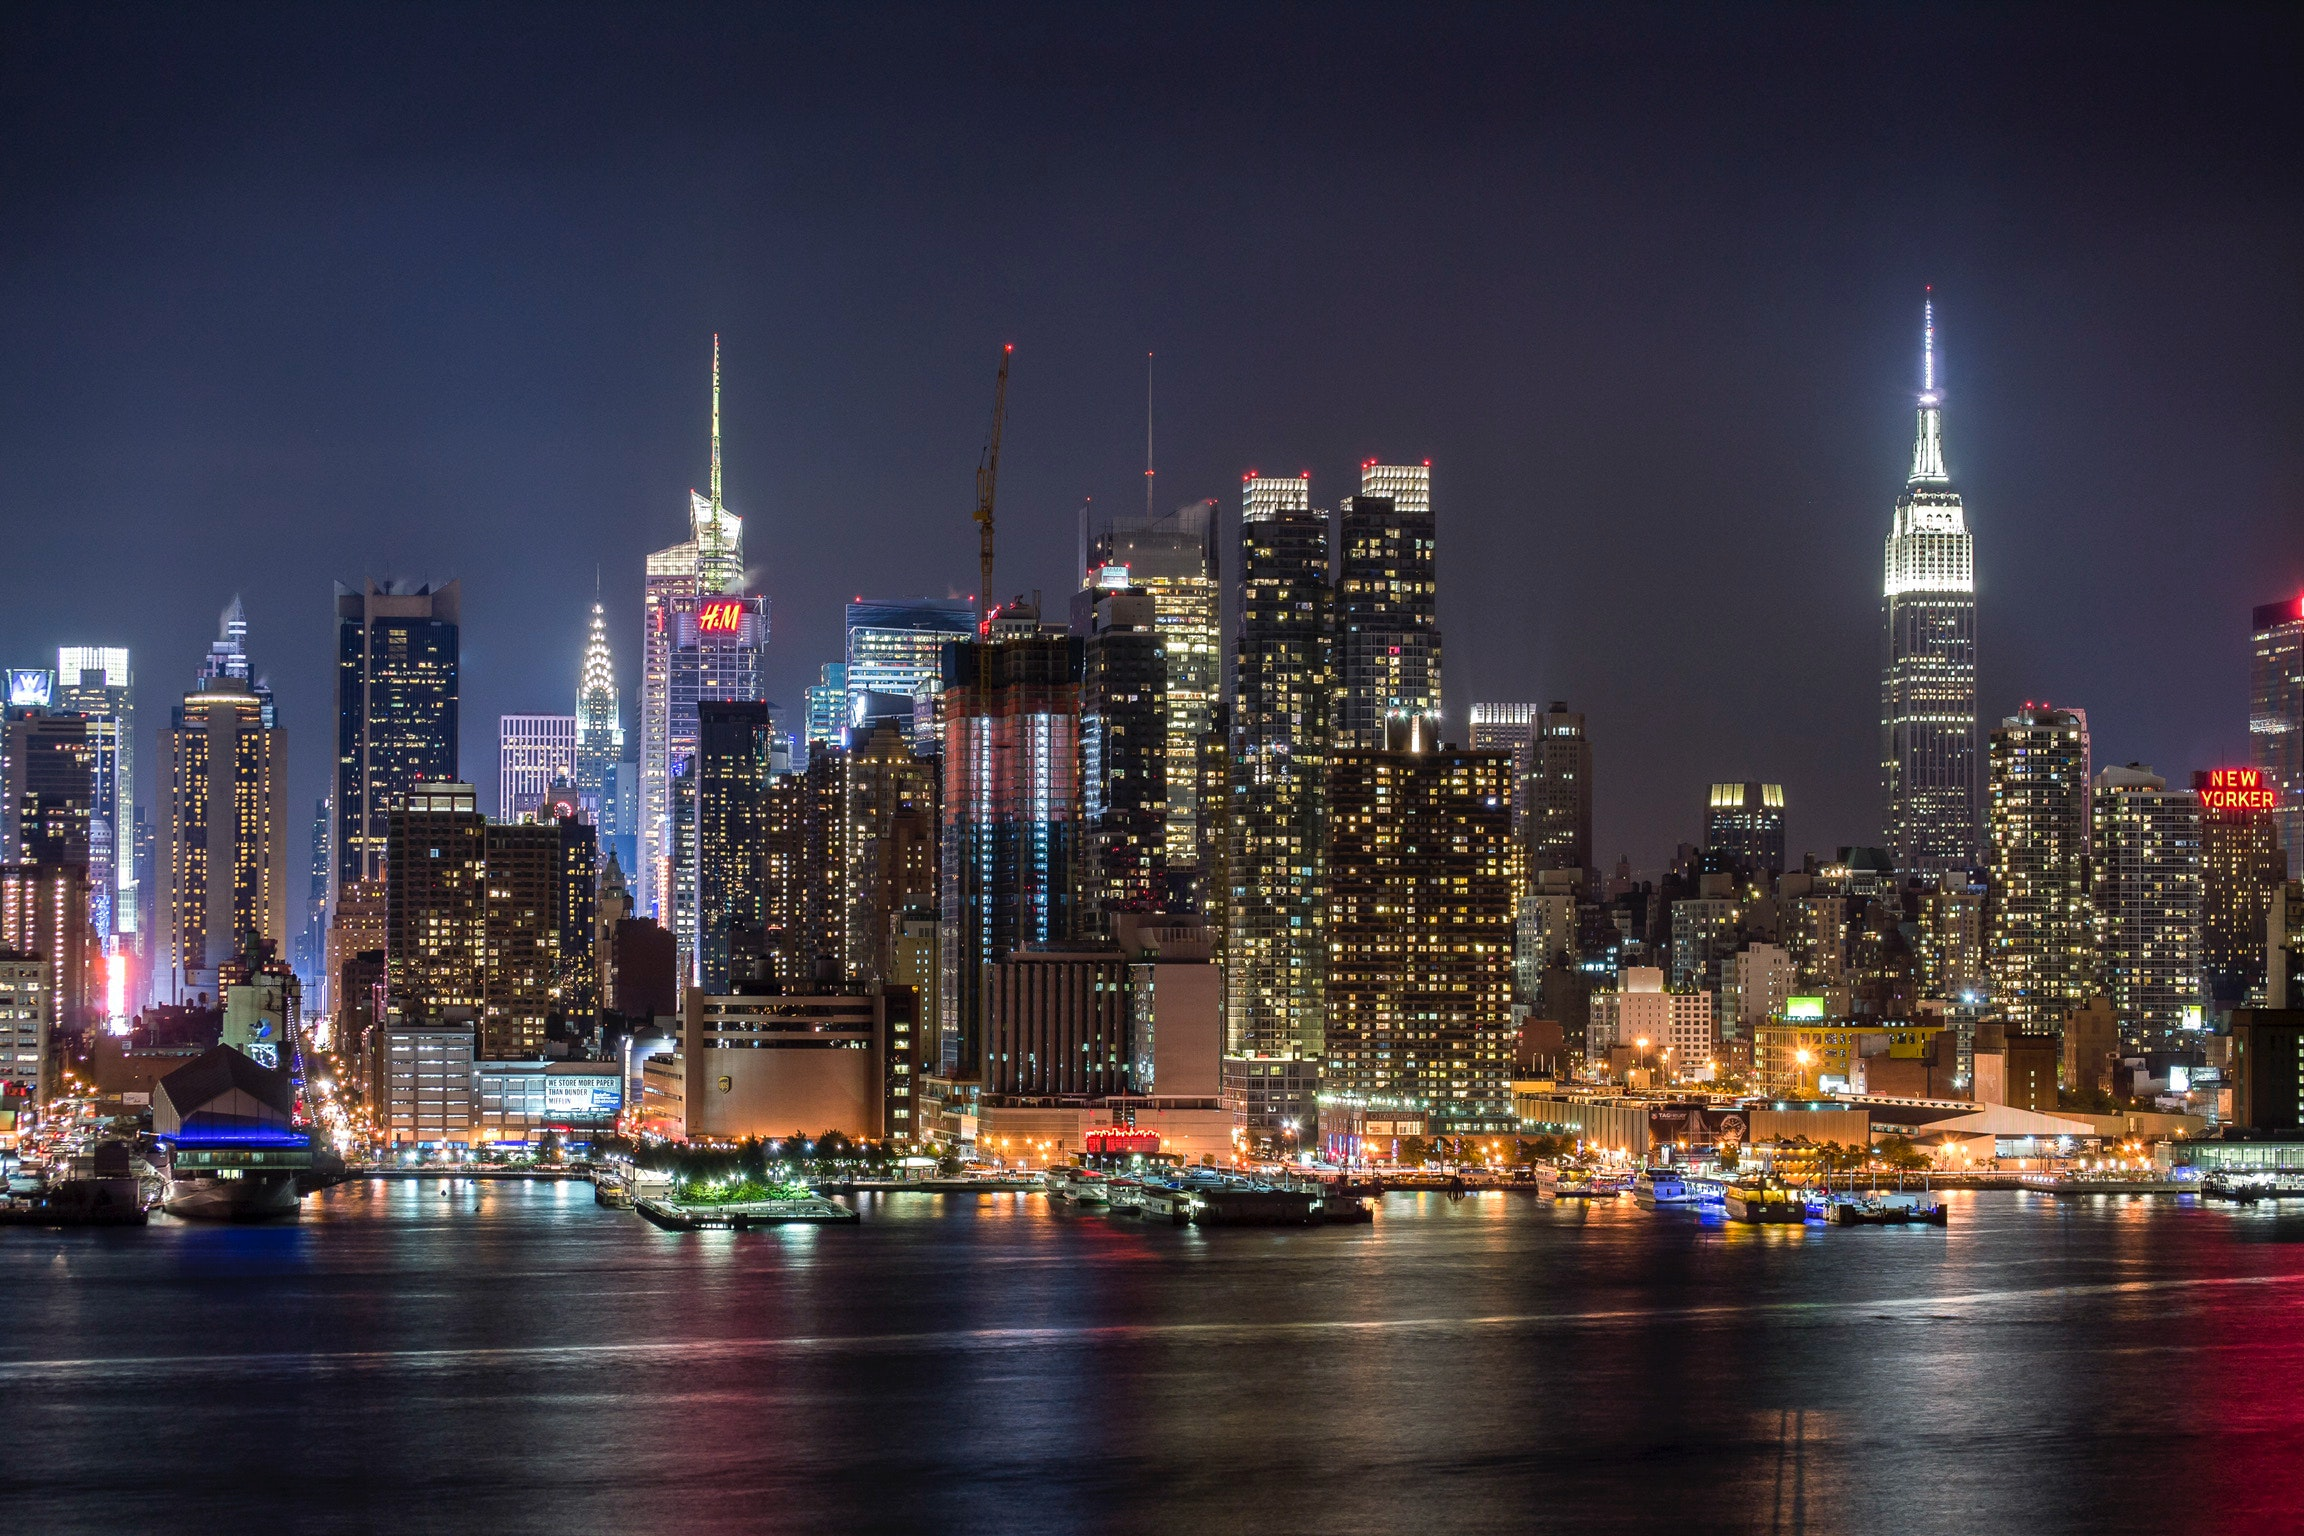 New york city wallpaper pexels free stock photos each new york city background image can be downloaded and used for free just click on a wallpaper picture you like the pictures also work very well as voltagebd